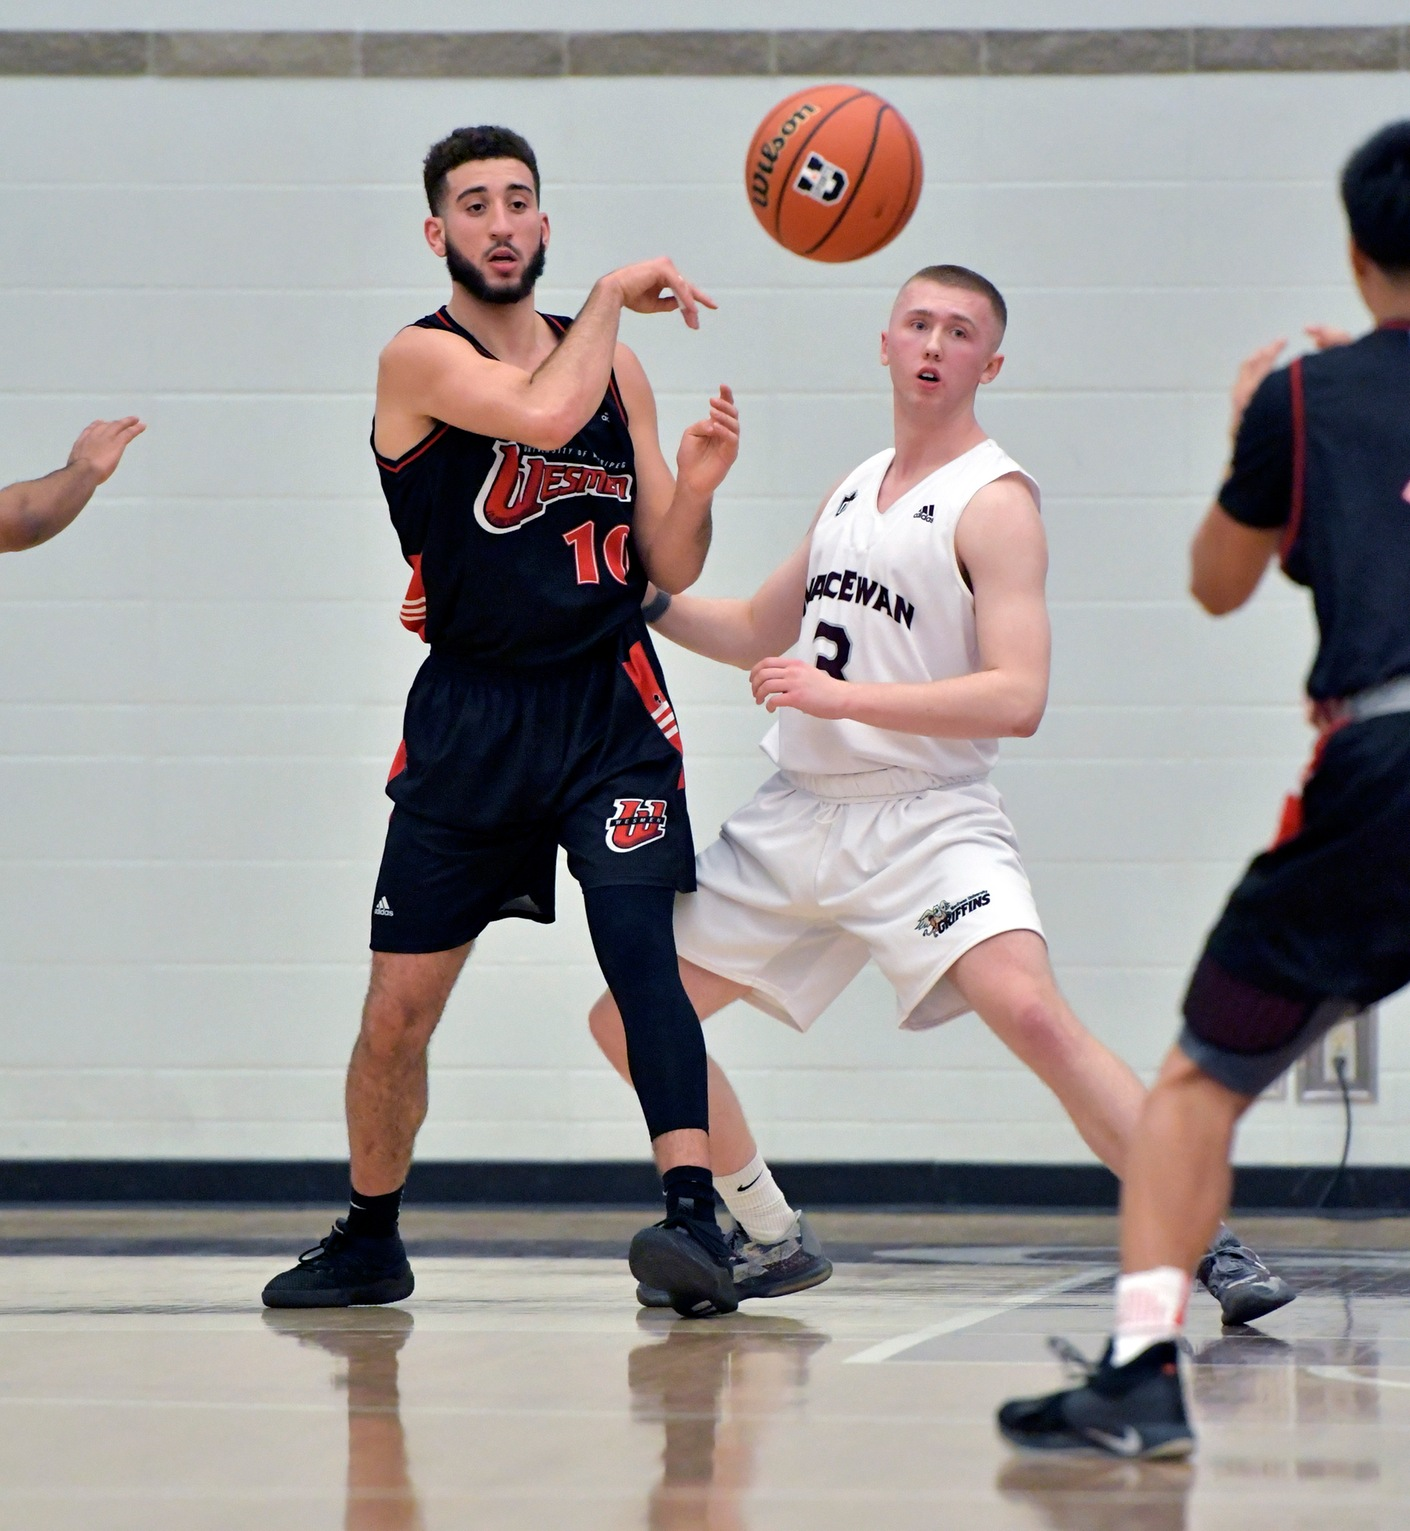 Winnipeg's Adam Benrabah makes a pass out of the post during the Wesmen's win over the MacEwan Griffins, Friday, November 9, 2018 in Edmonton, Alta. (Chris Piggott/MacEwan Athletics)